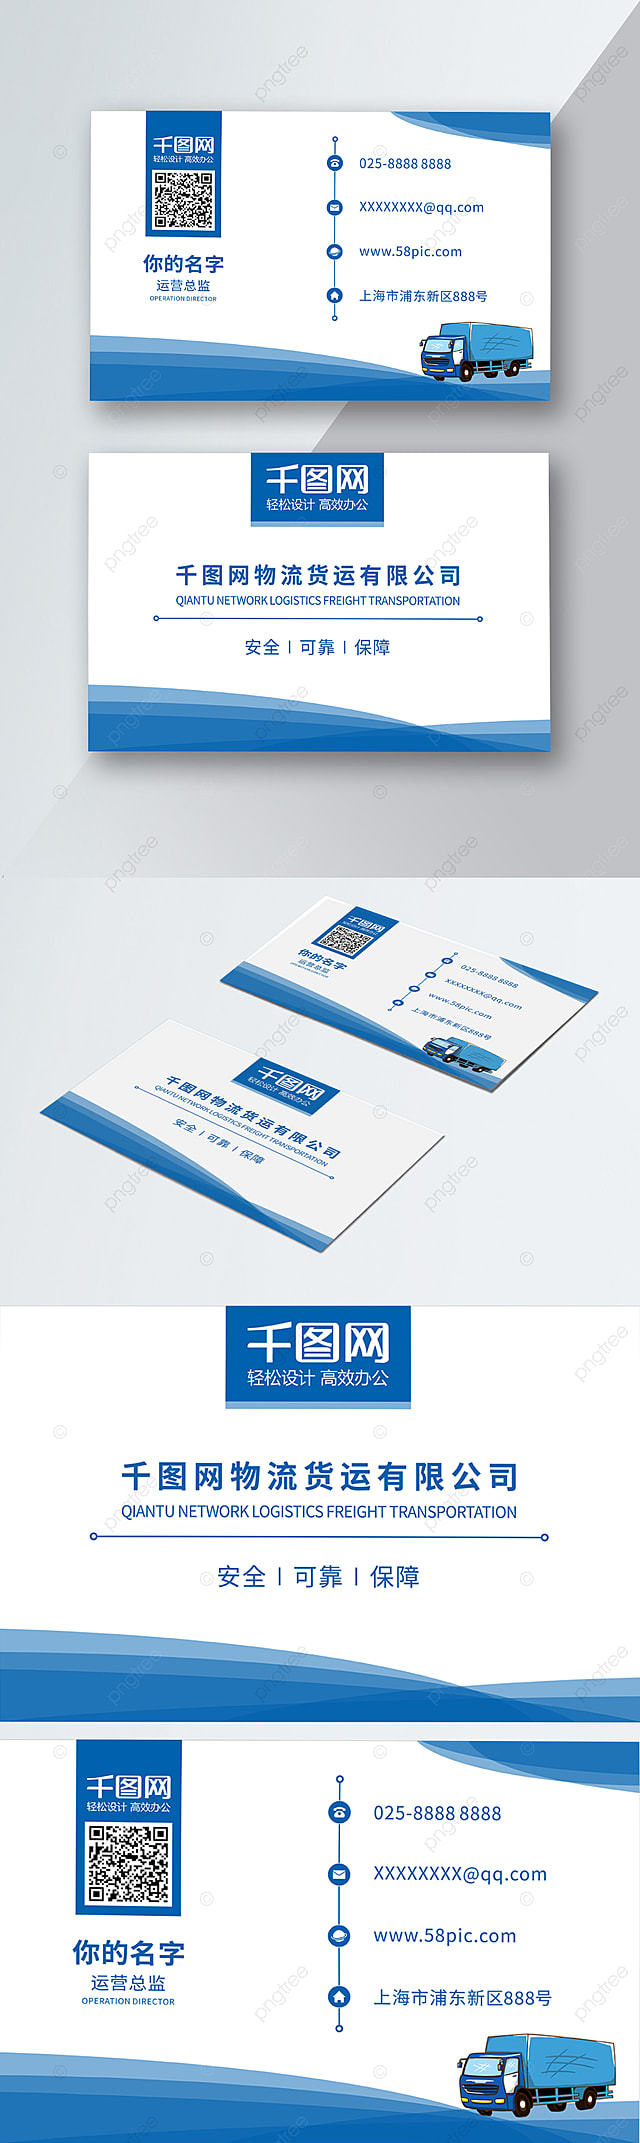 Cargo Company Business Card Material Download Shipping